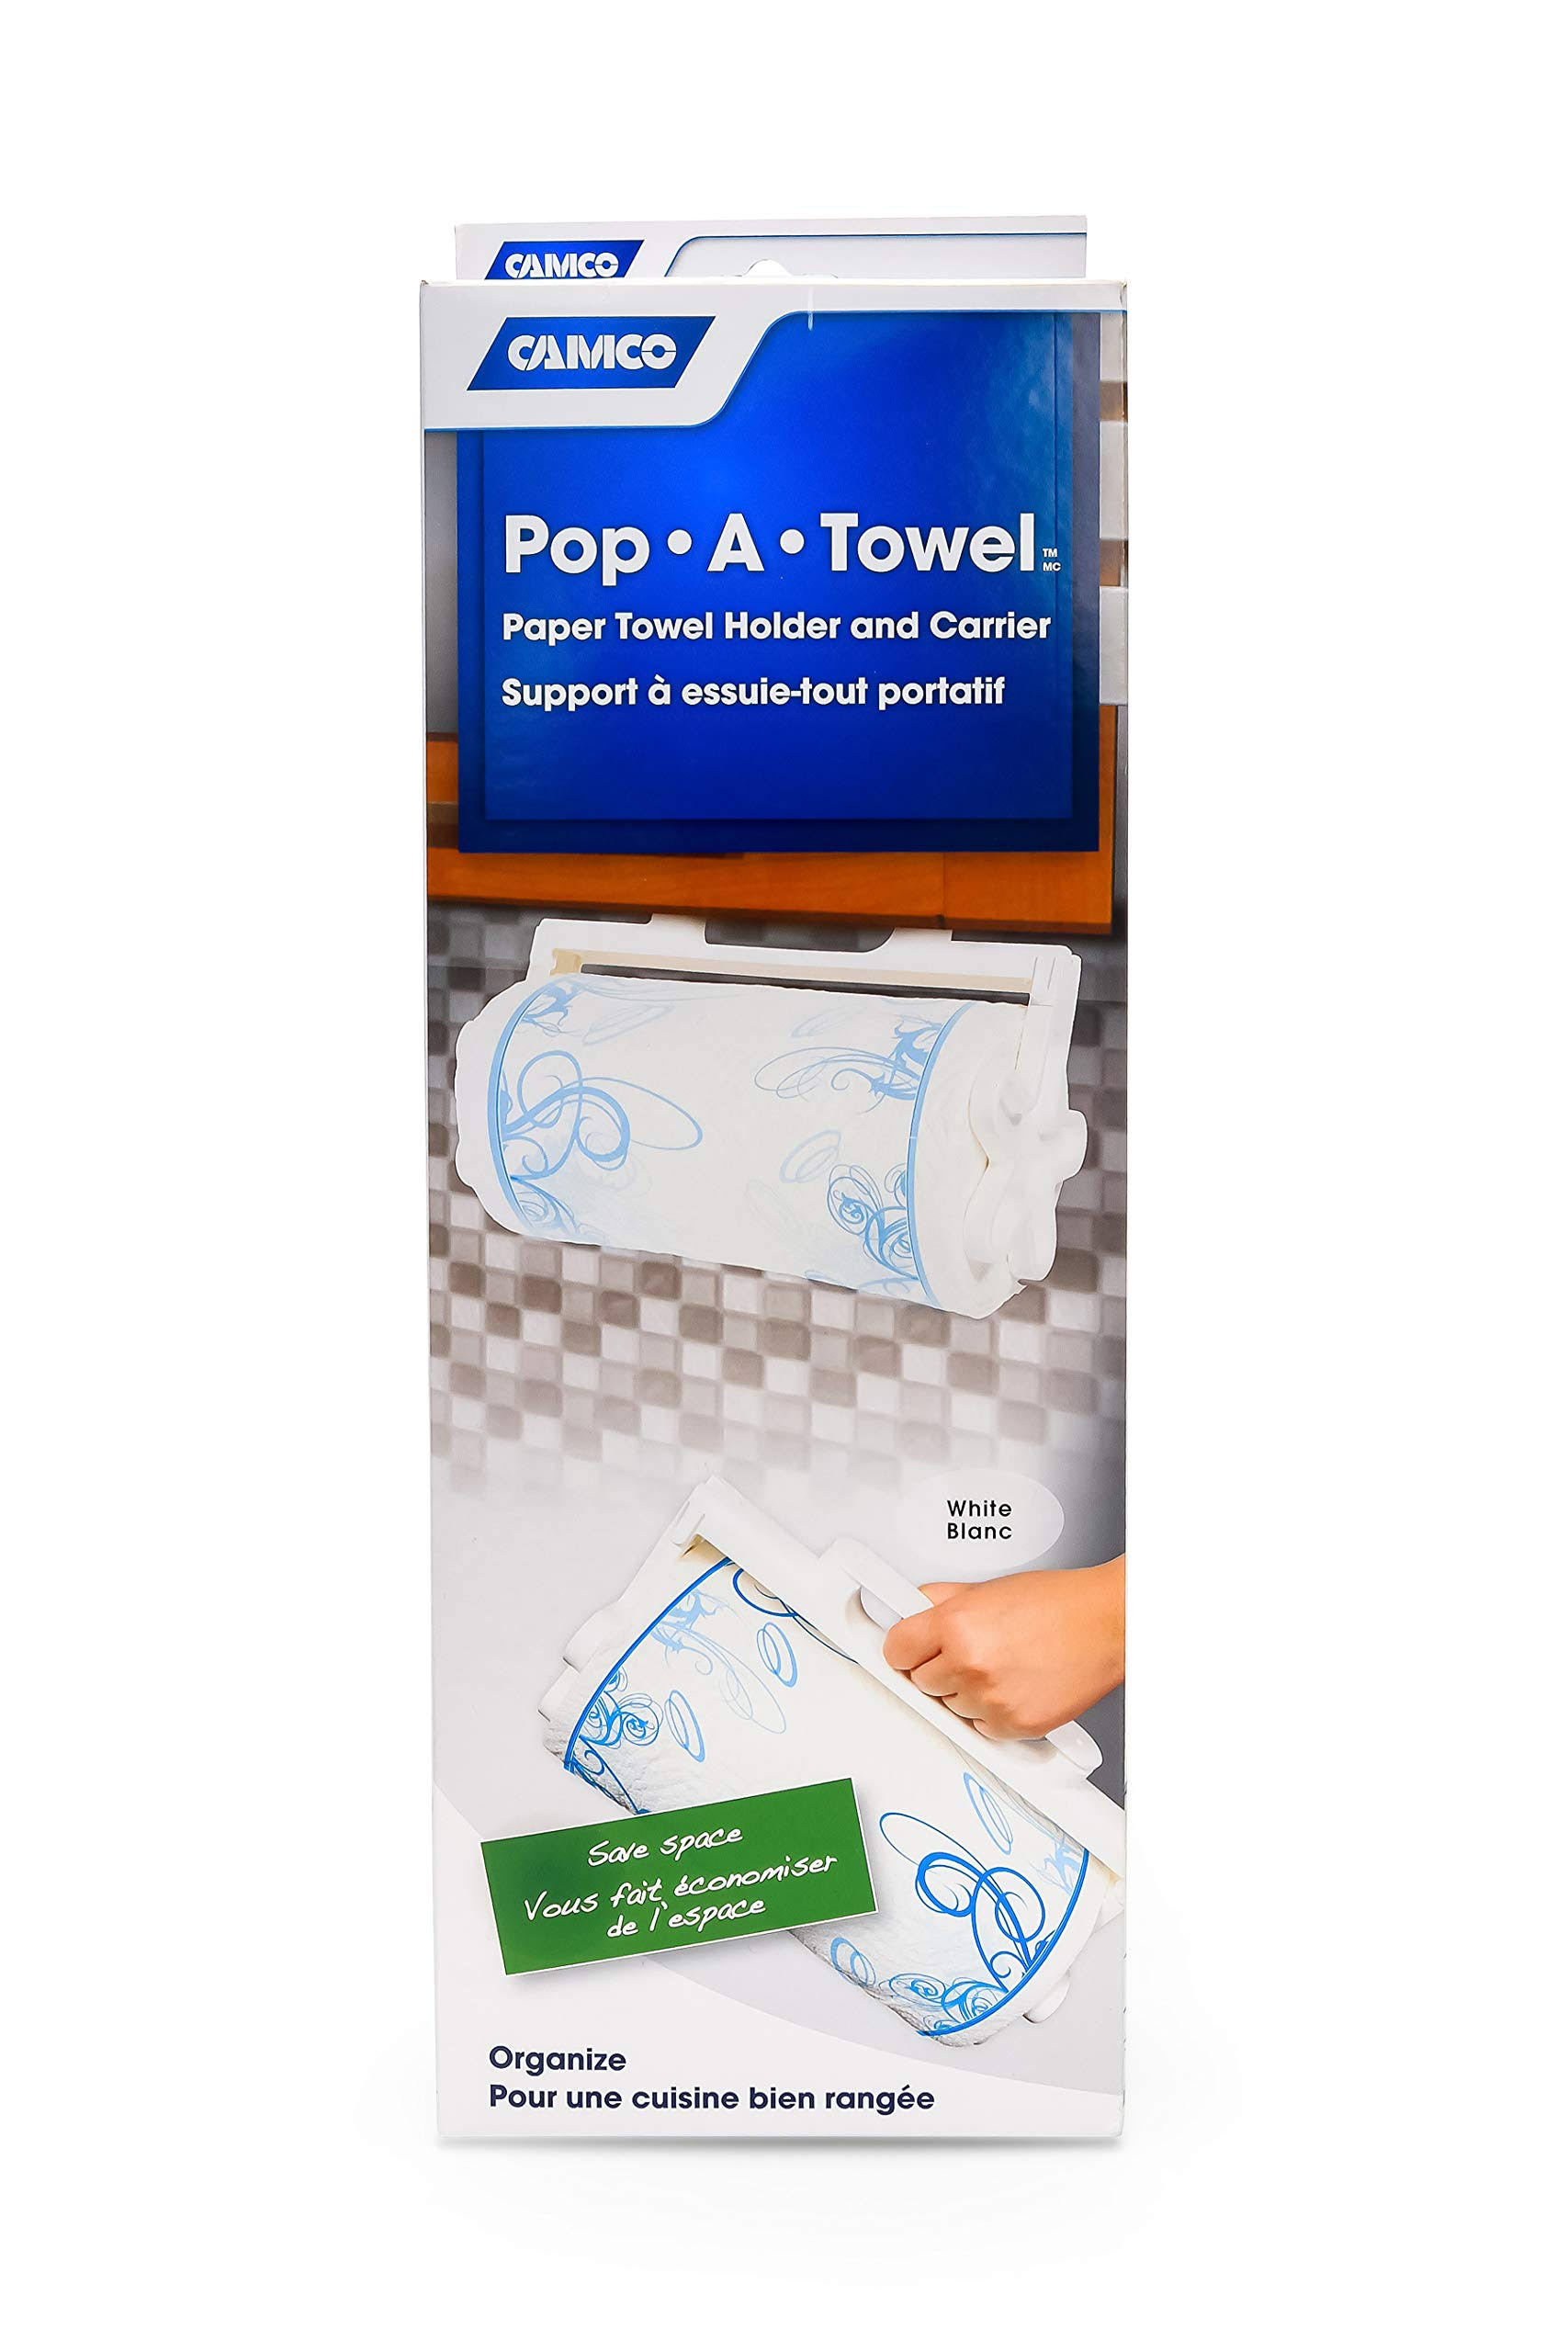 Camco Pop-A-Towel Paper Towel Holder Carrier - White